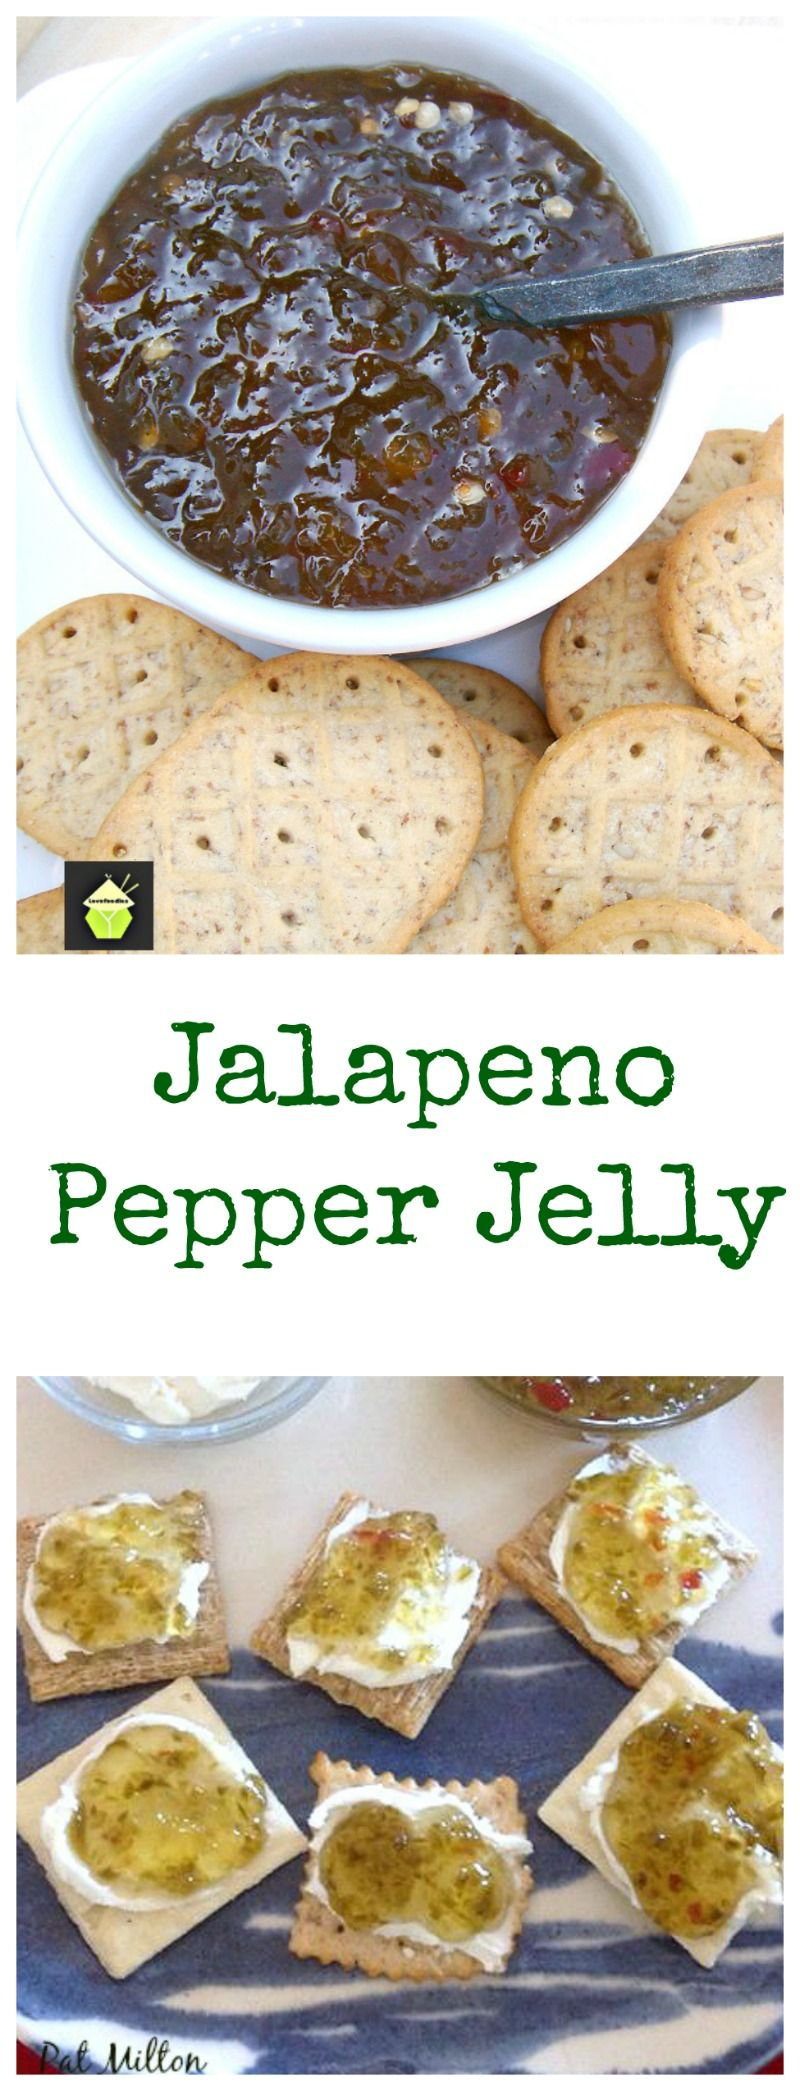 Nanny's Easy Jalapeno Pepper Jelly Great recipe and delicious served on crackers with cream cheese! #jalapeno #jelly #canning